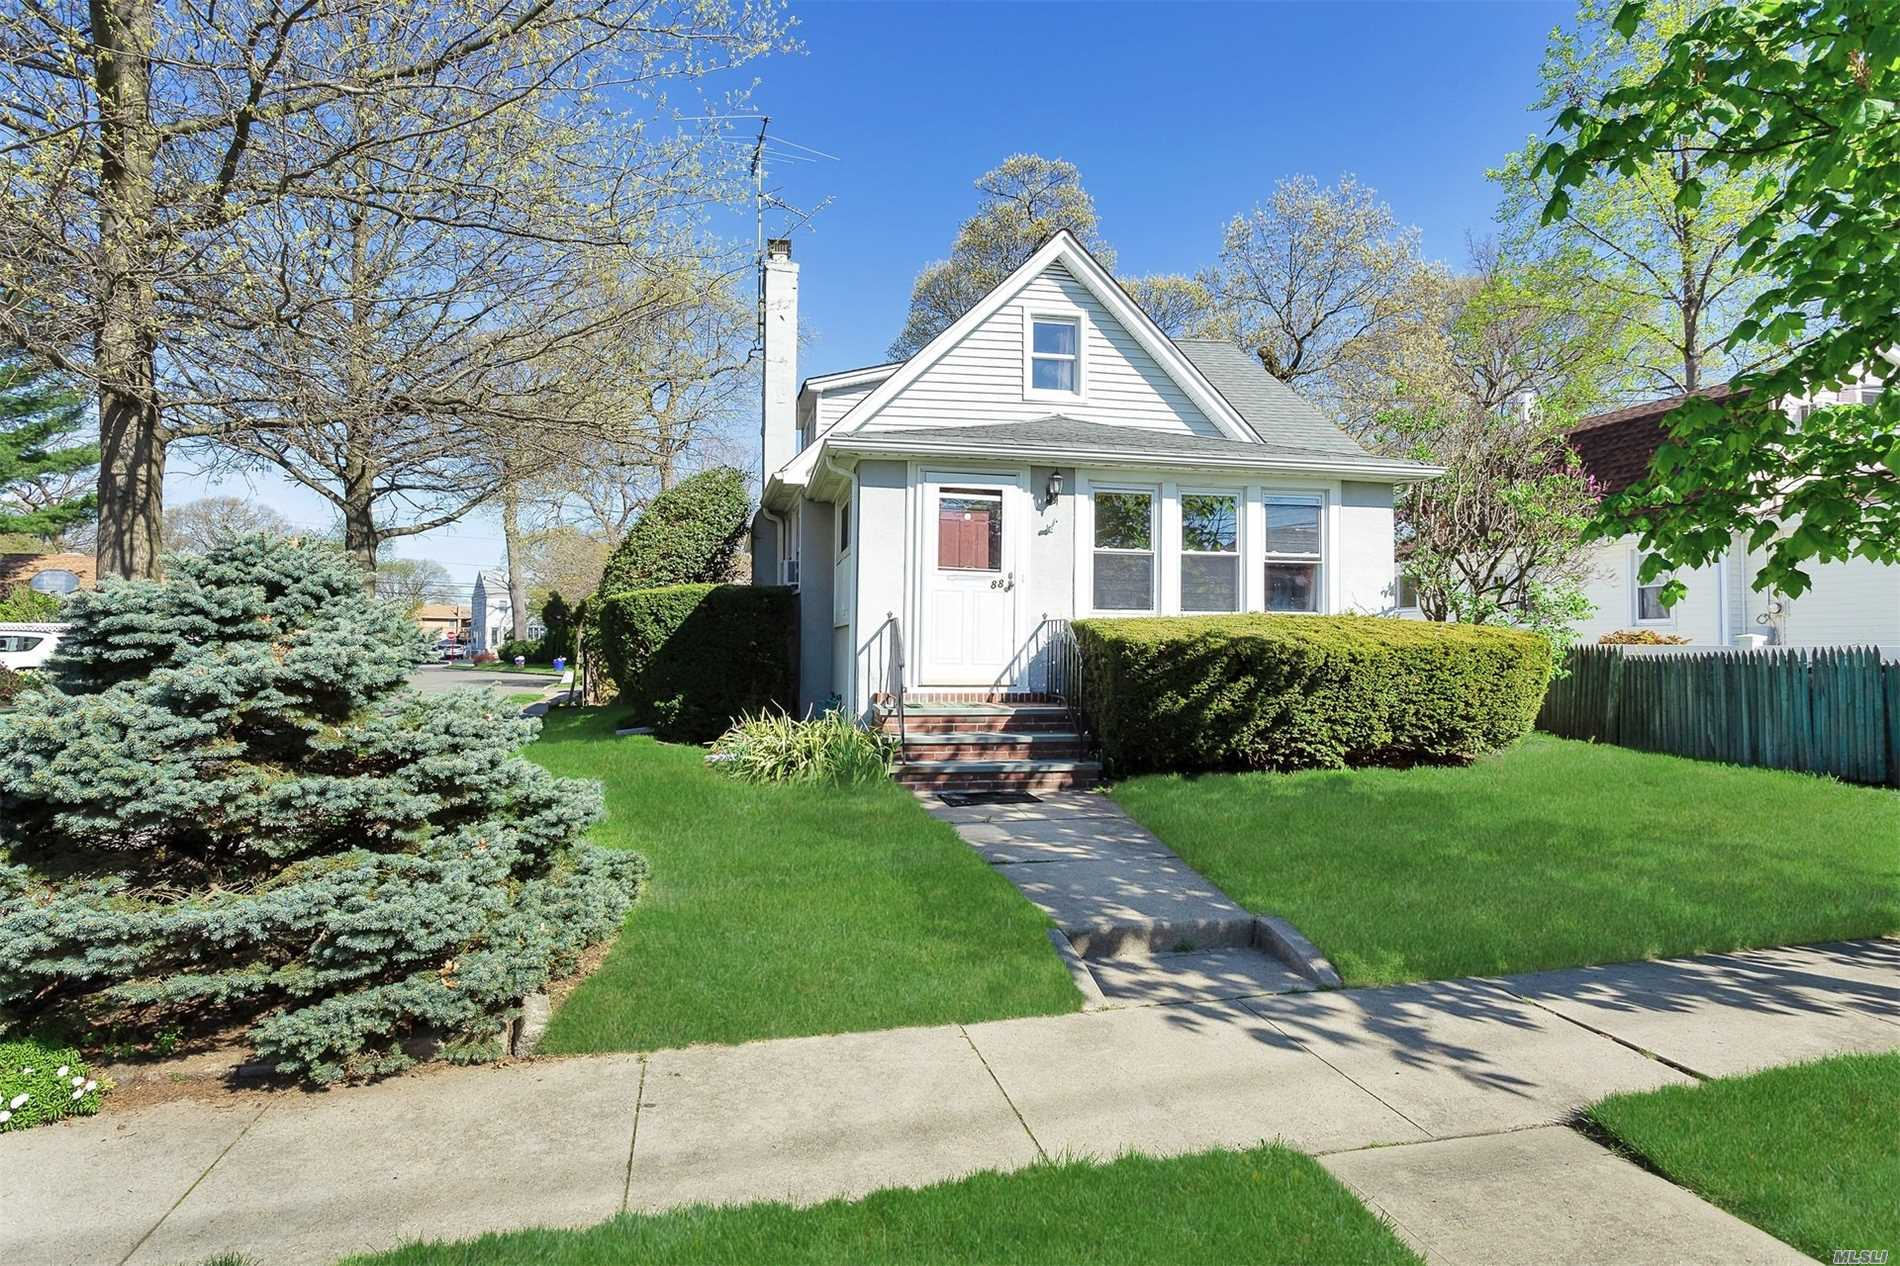 Great Cape Located In The Desirable Westwood Section Of Valley Stream. This home features 4 Bedrooms, 1 Full Bath, Wood Burning Fireplace, Hard Wood Floors Throughout, and Gas Heating and Cooking. Quiet Residential Block. Needs TLC. Being Sold As Is